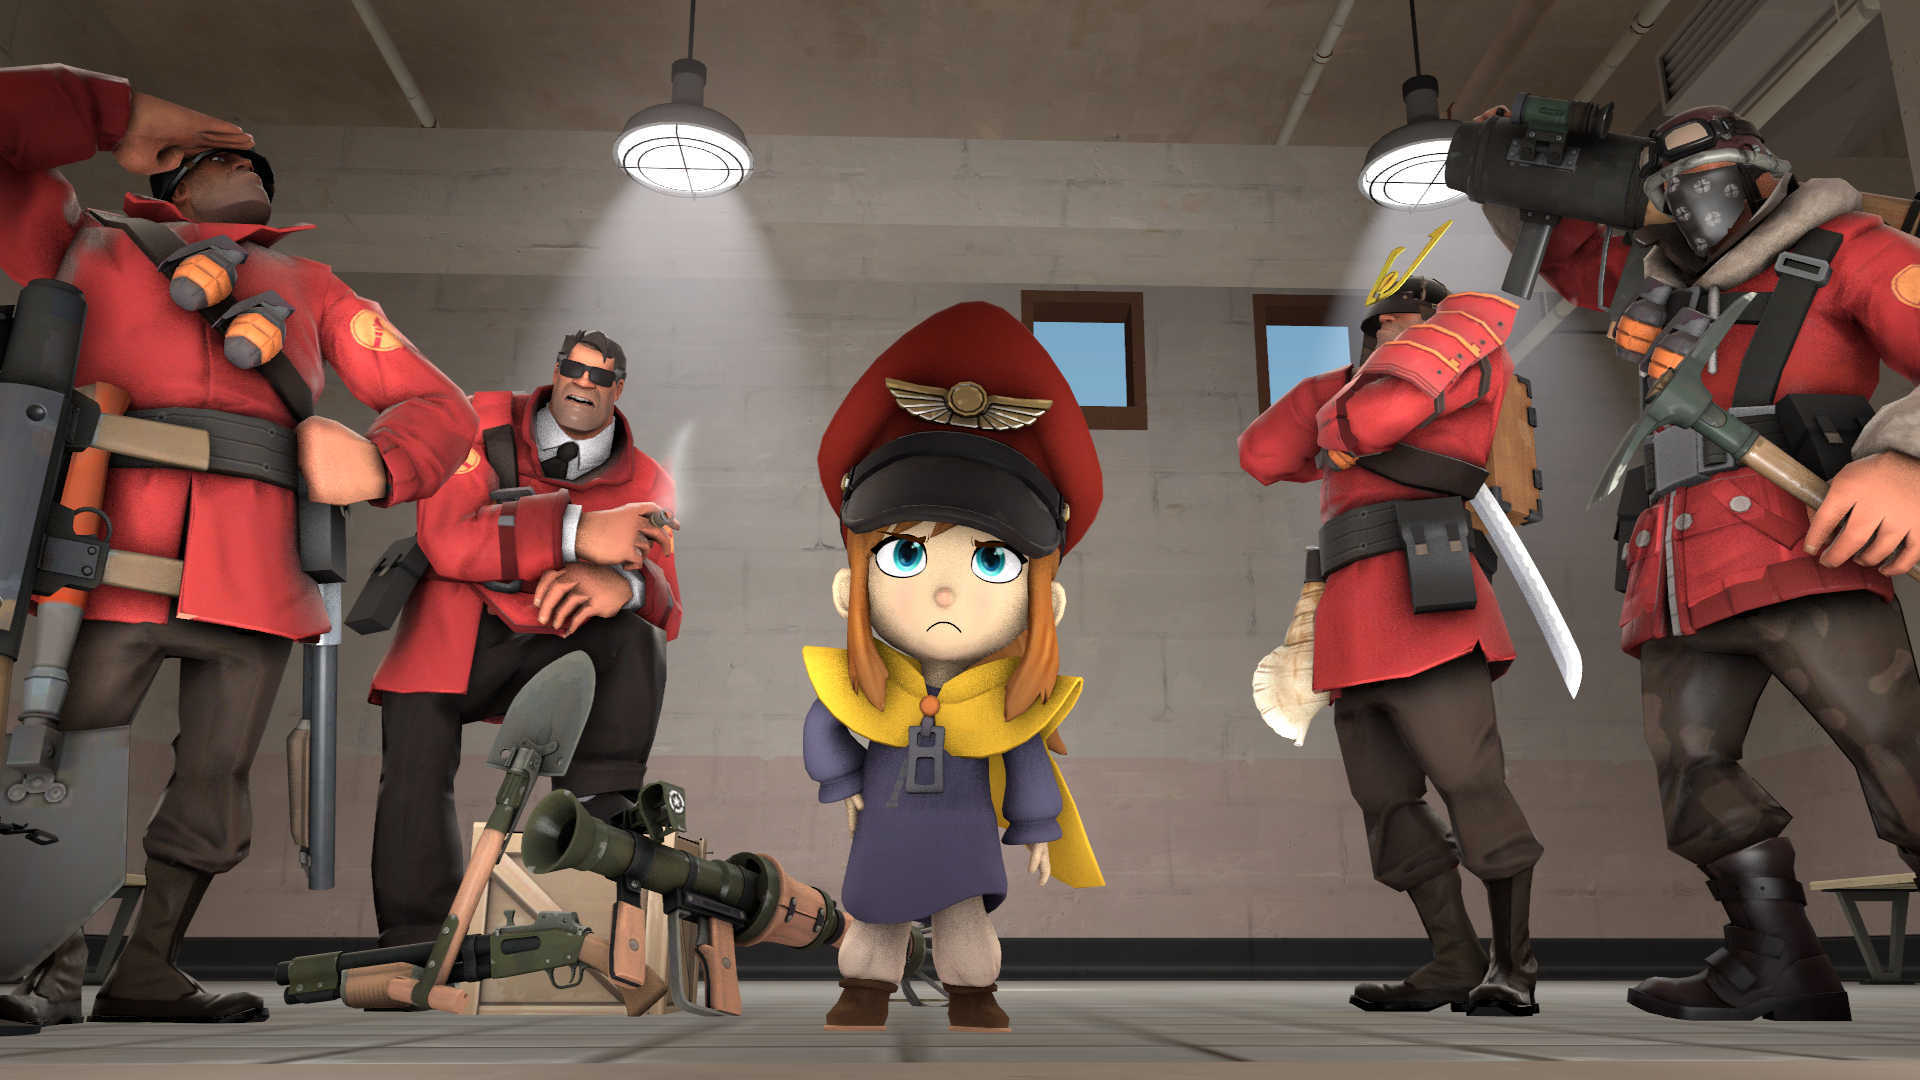 Leader Png 1920 1080 A Hat In Time Tf2 Memes Cute Games